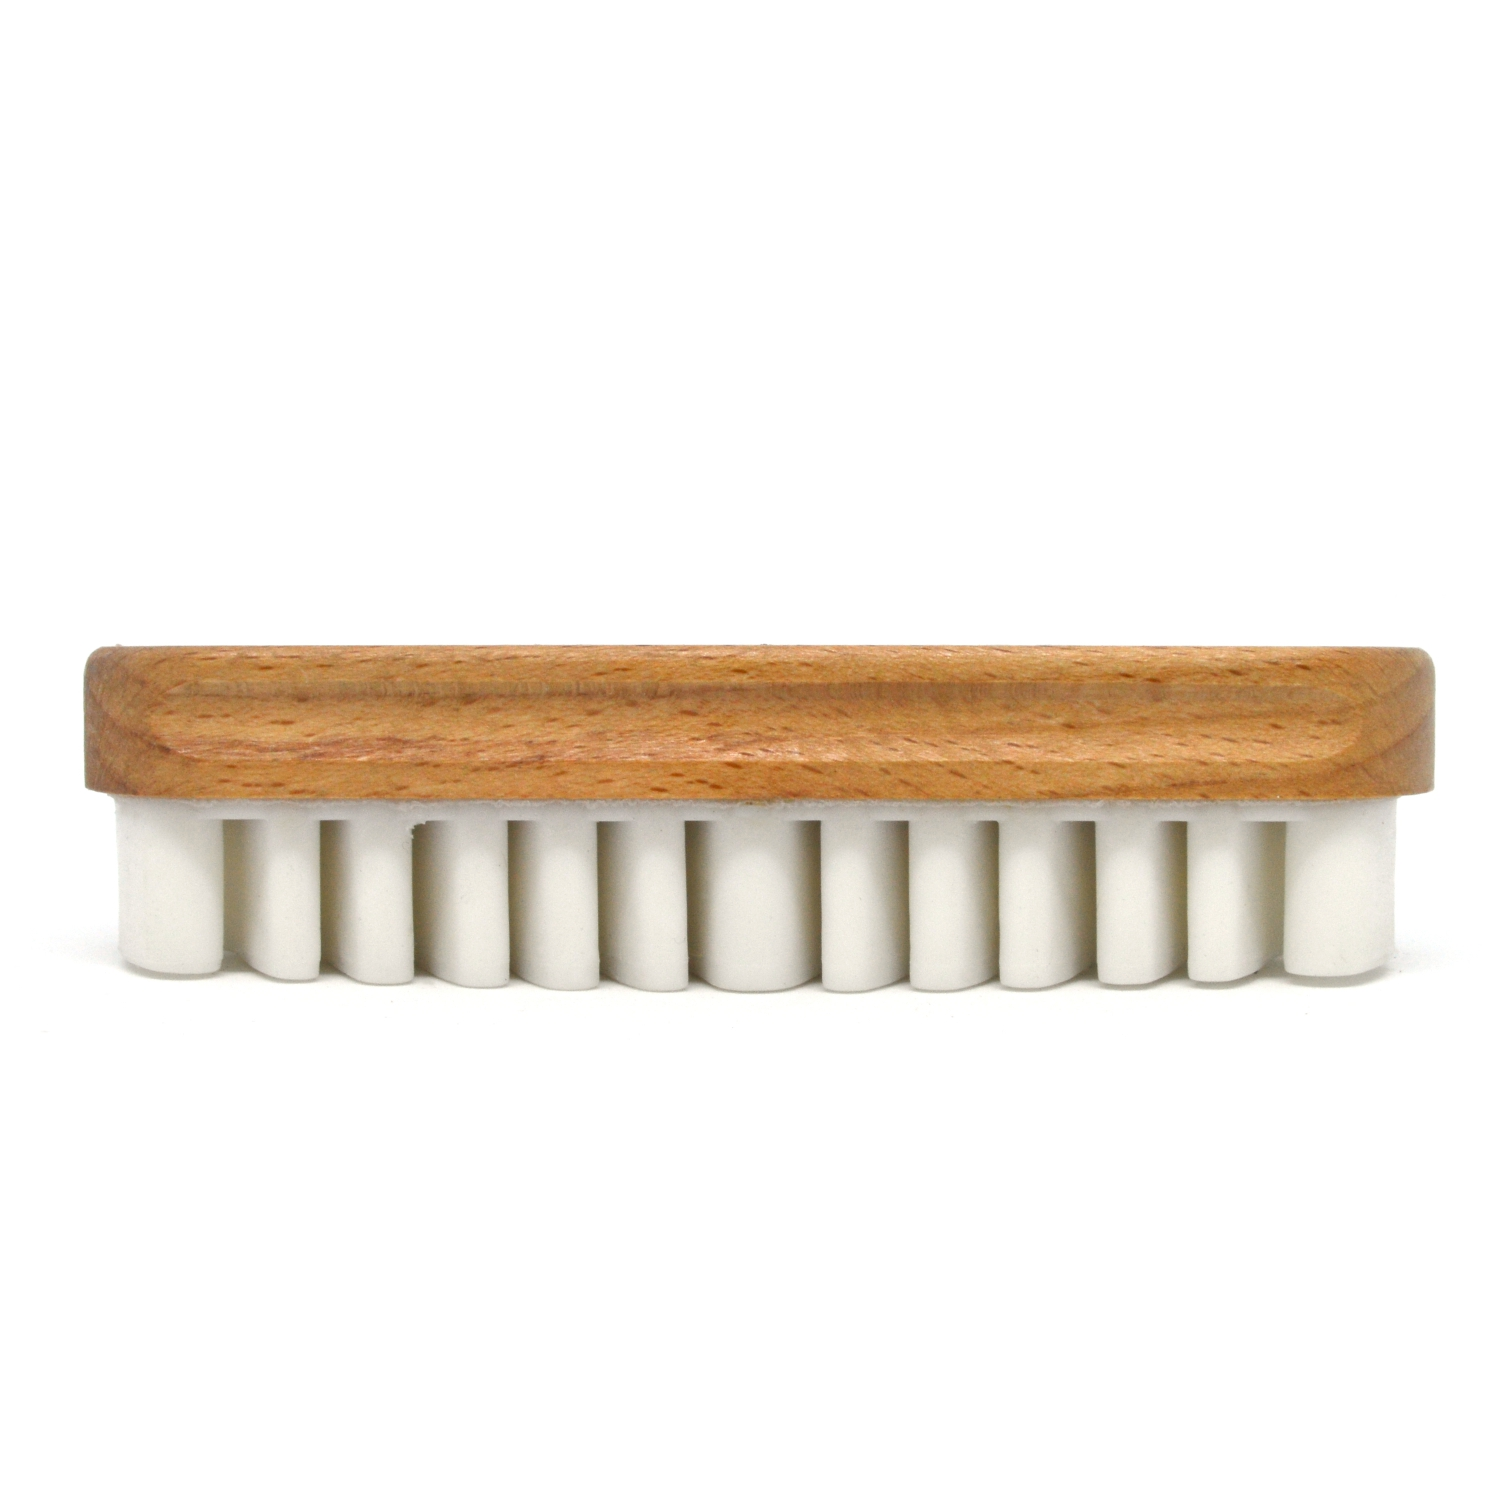 Crepe Suede Nubuck Shoe Brush side